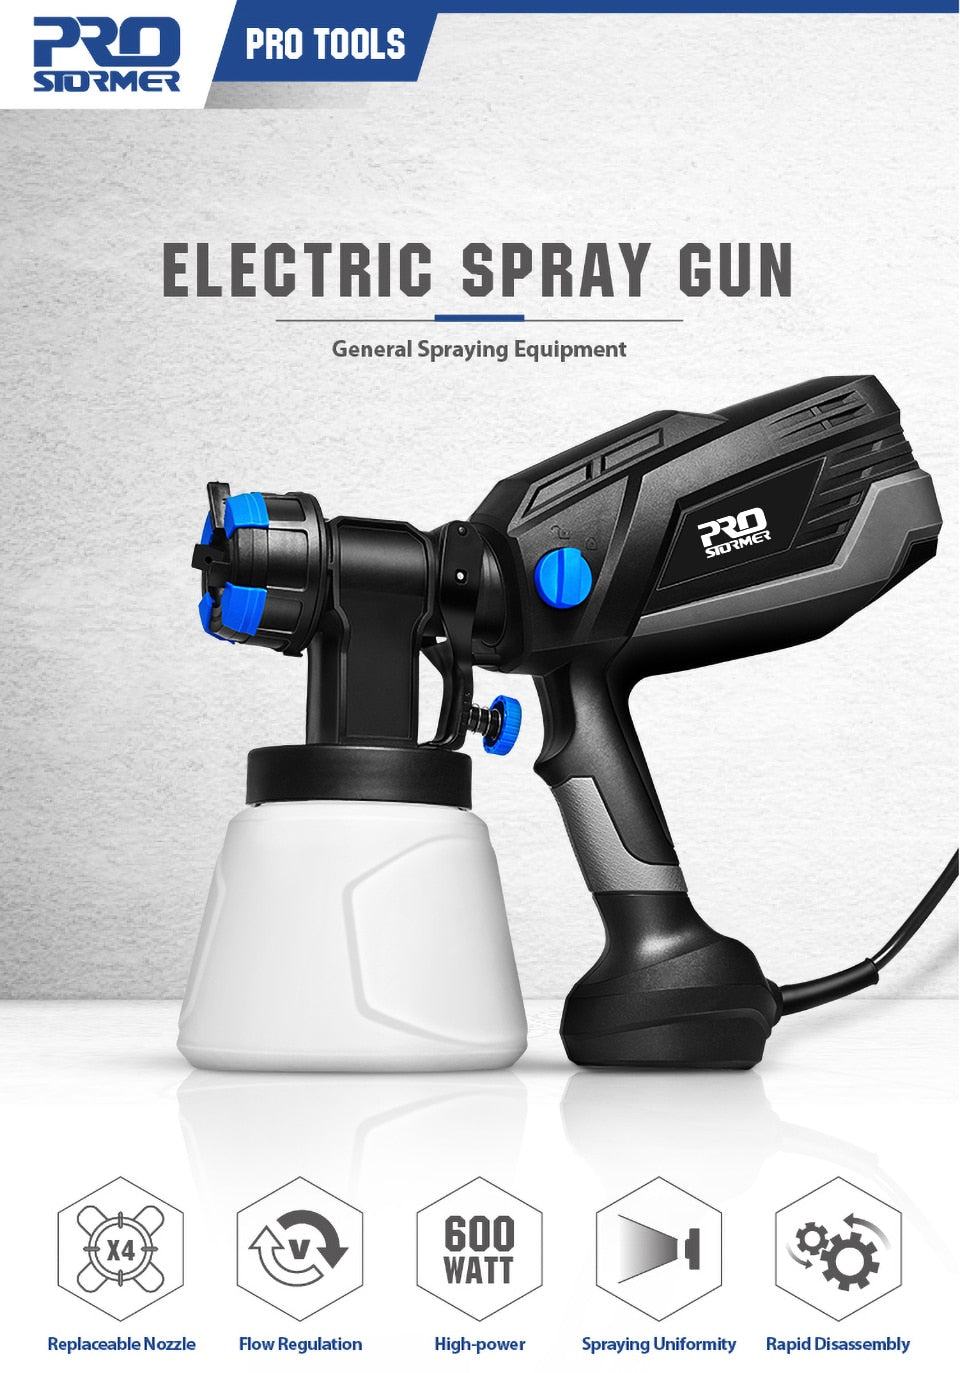 600W Electric Spray Gun 4 Nozzle Sizes 1000ml HVLP Household Paint Sprayer Flow Control Airbrush Easy Spraying by PROSTORMER